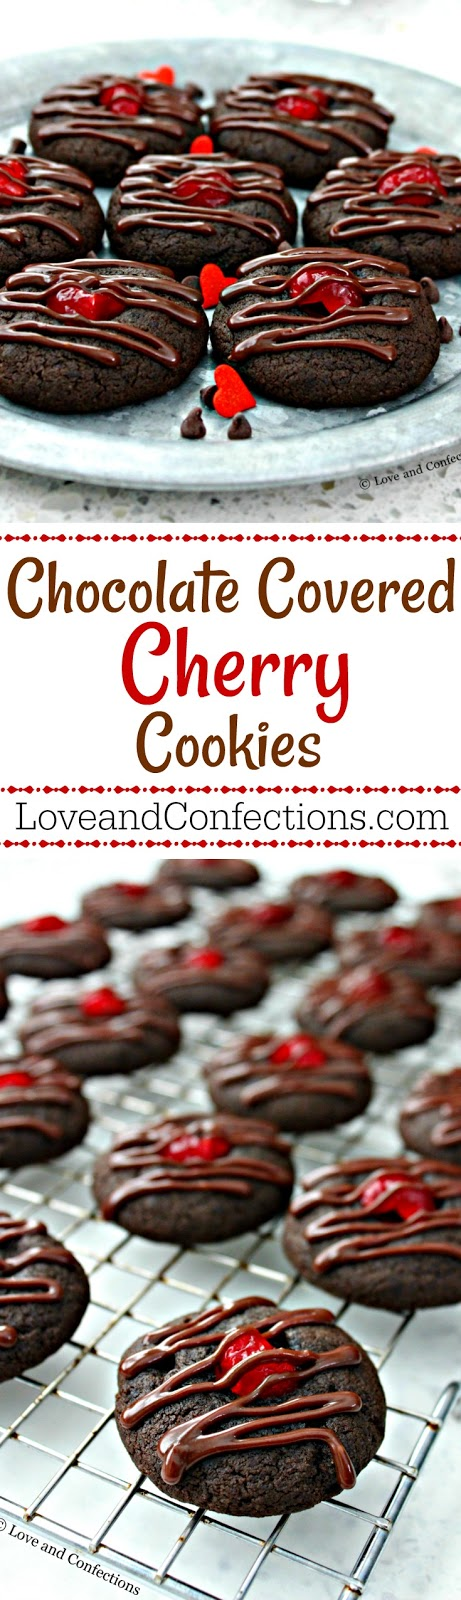 Chocolate Covered Cherry Cookies from LoveandConfections.com